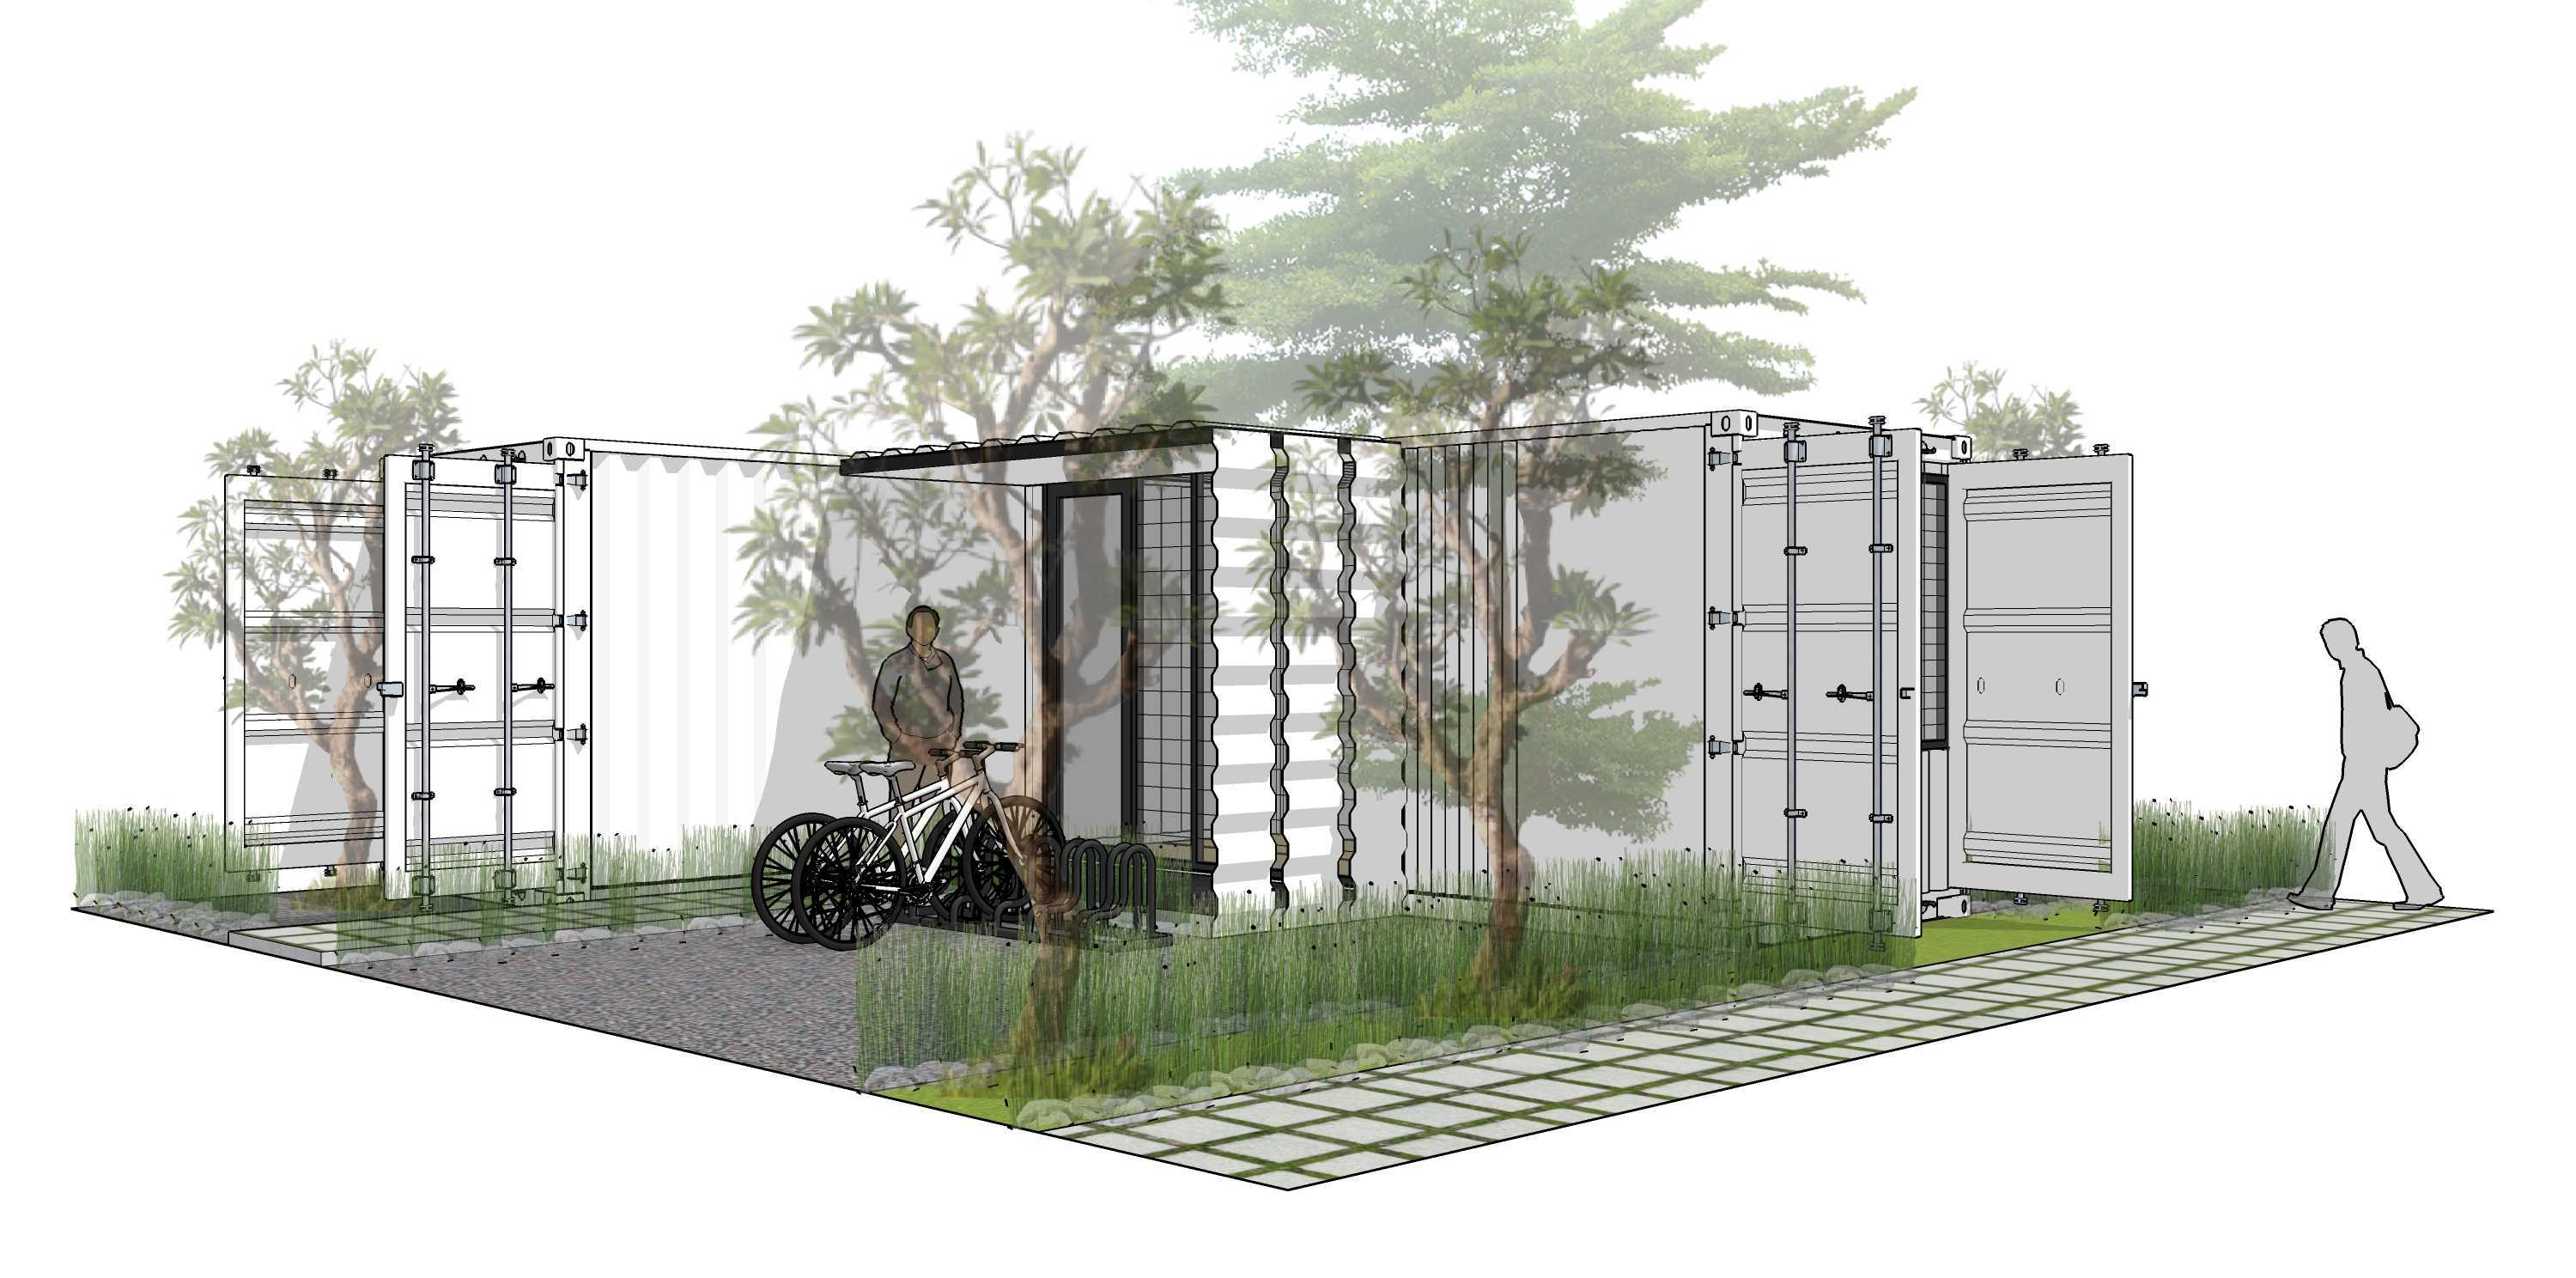 Ardea Architects Container Guest House Mandalay, Myanmar (Burma) Mandalay, Myanmar (Burma) Ardea-Architects-Container-Guest-House   58624